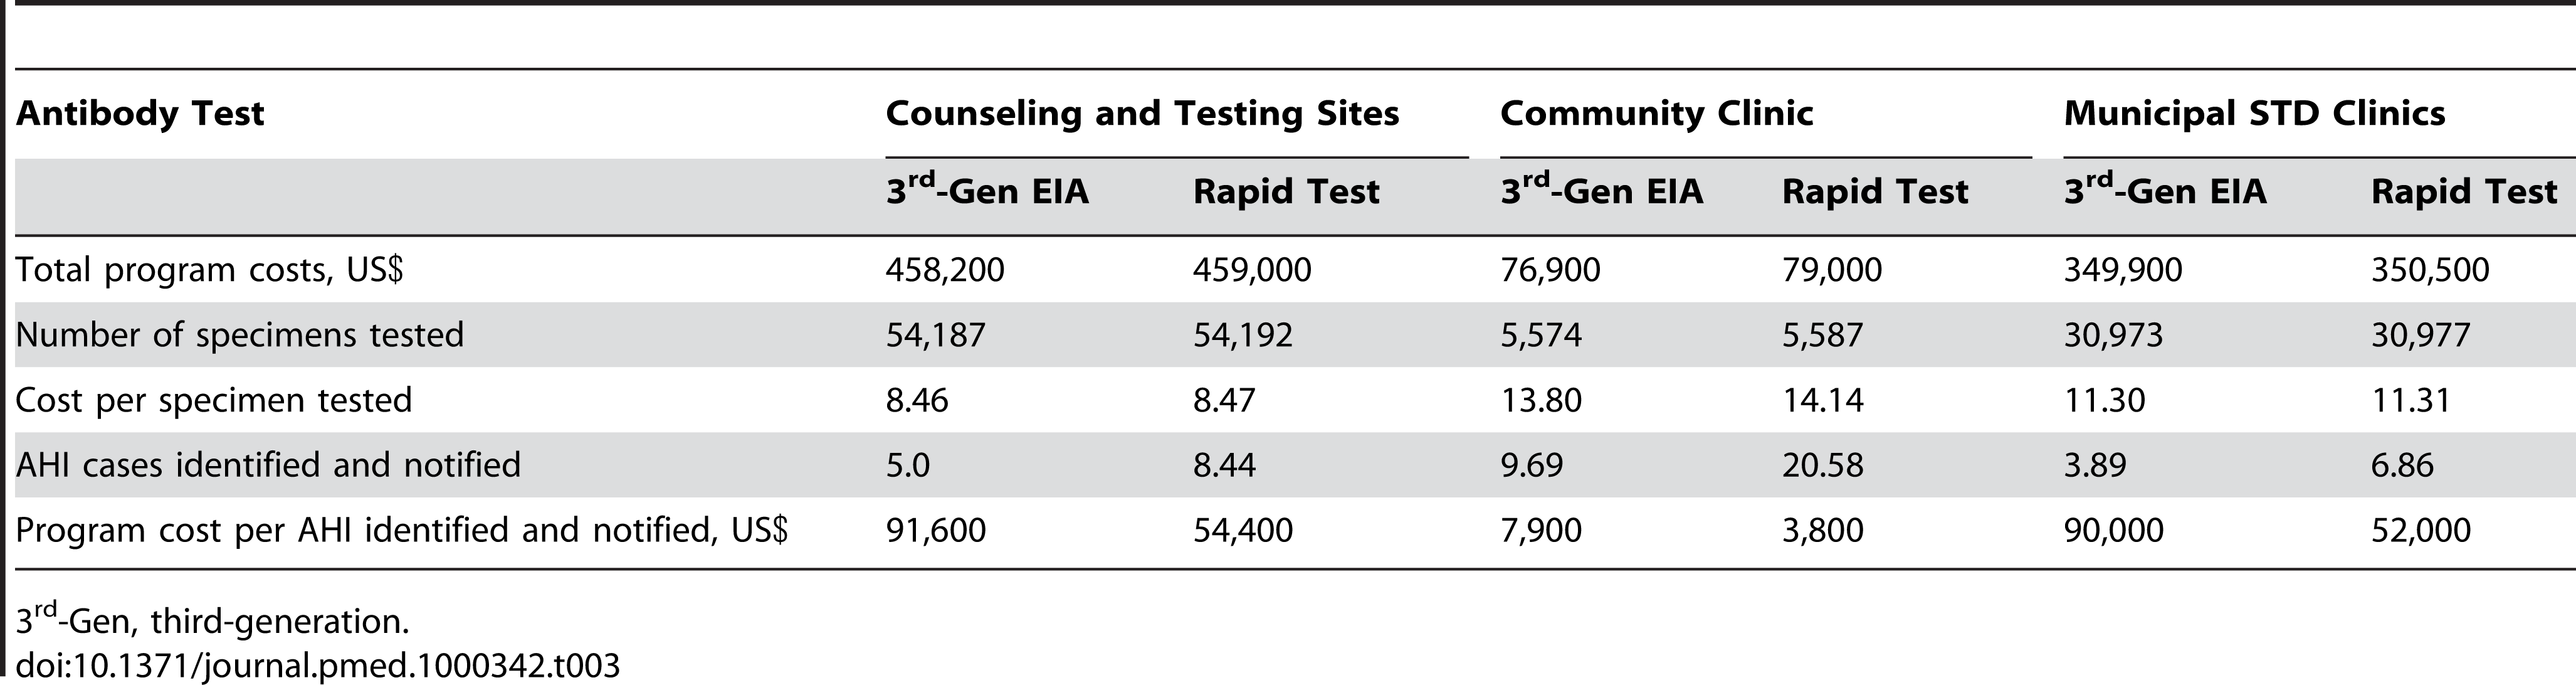 Program costs and outcomes of pooled NAAT screening for AHI after third-generation EIA or rapid testing.